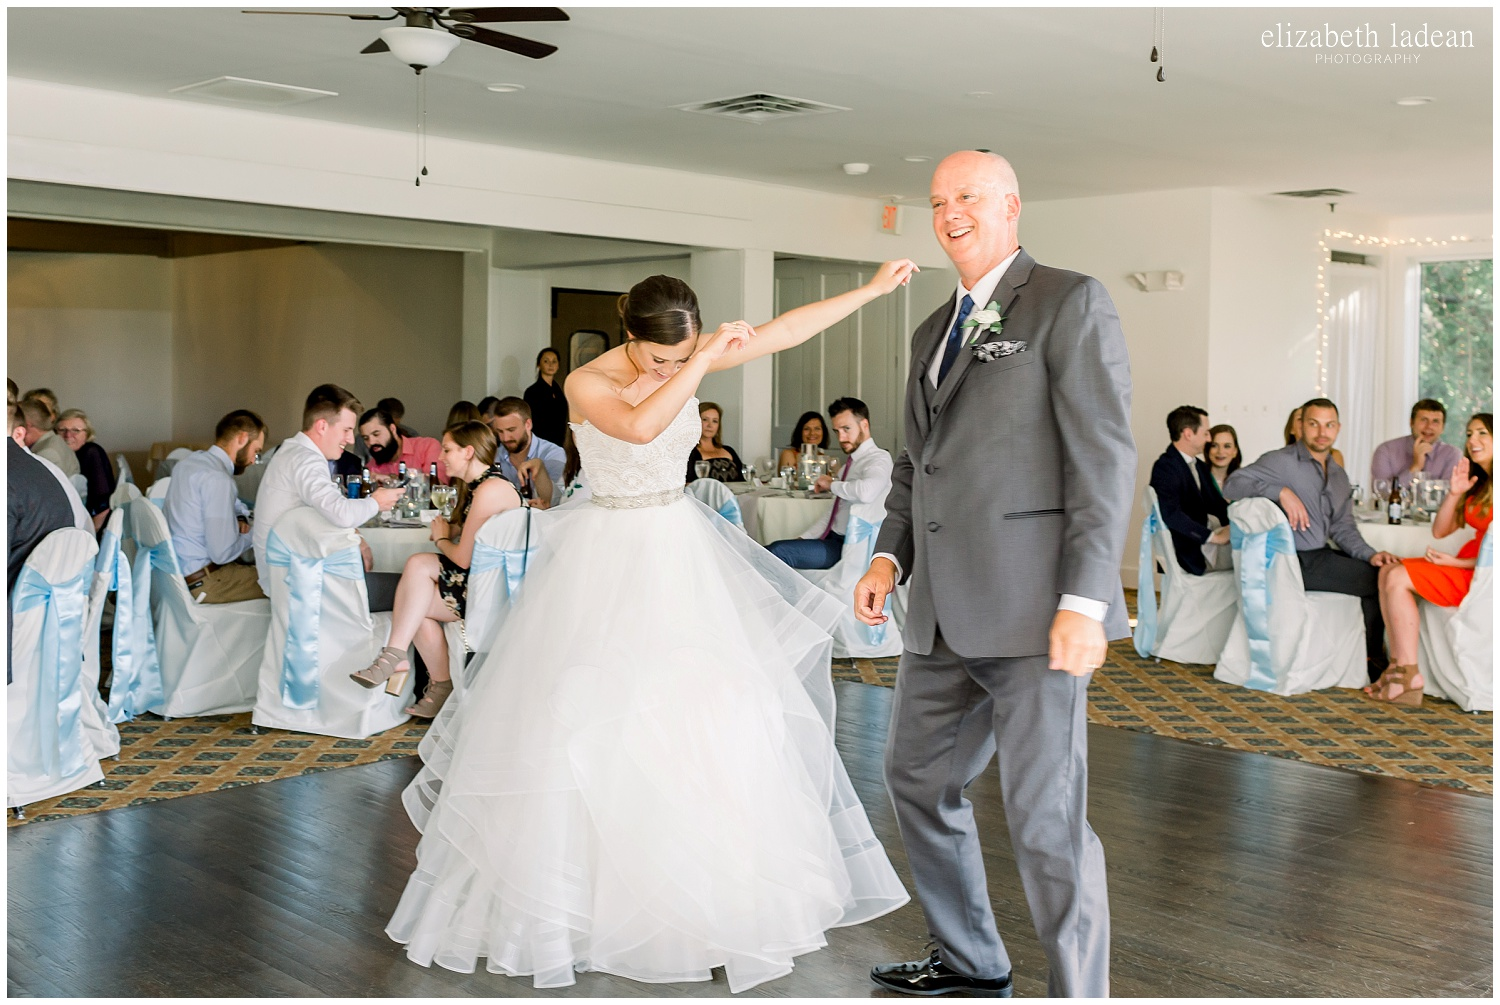 -behind-the-scenes-of-a-wedding-photographer-2018-elizabeth-ladean-photography-photo_3469.jpg